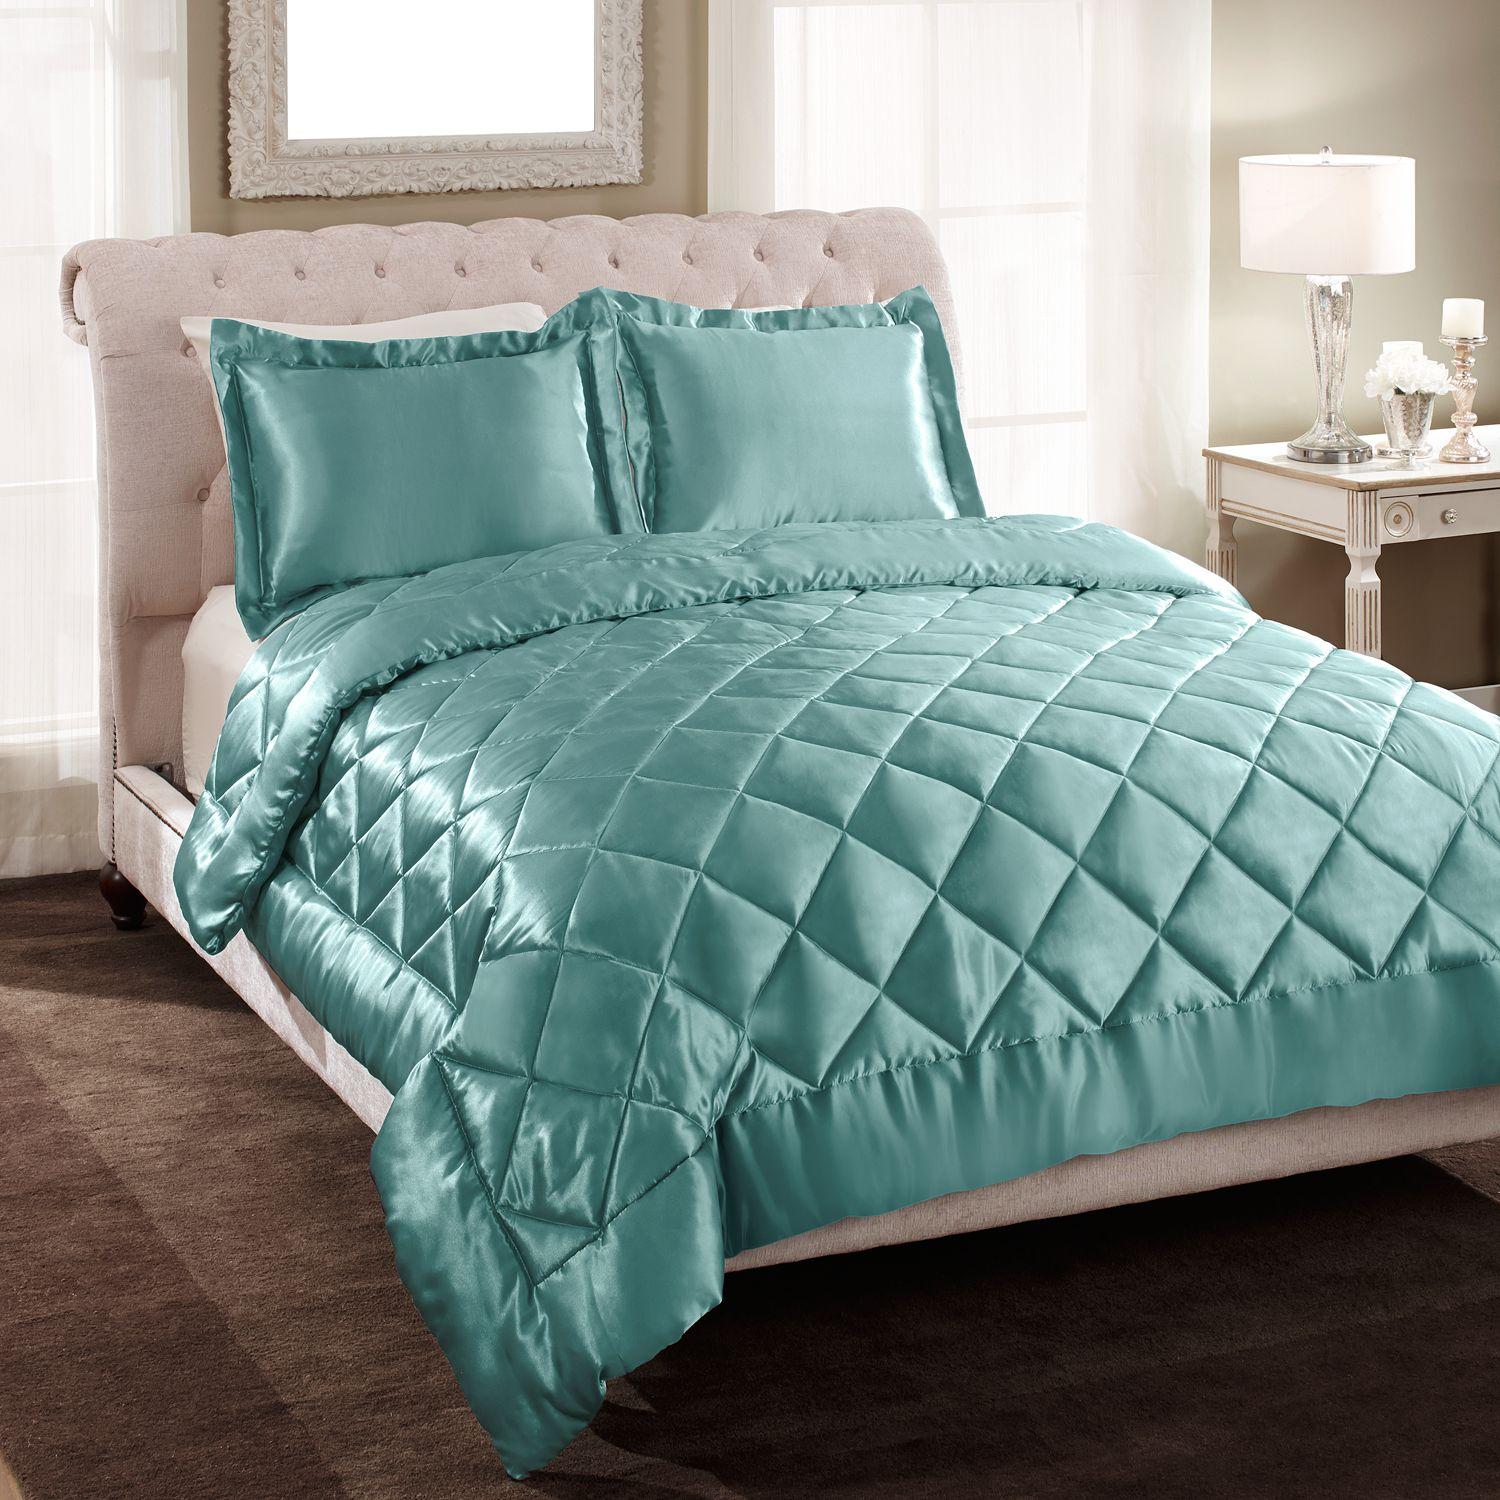 Patti Labelle Quilted Satin Comforter Set King 87 74